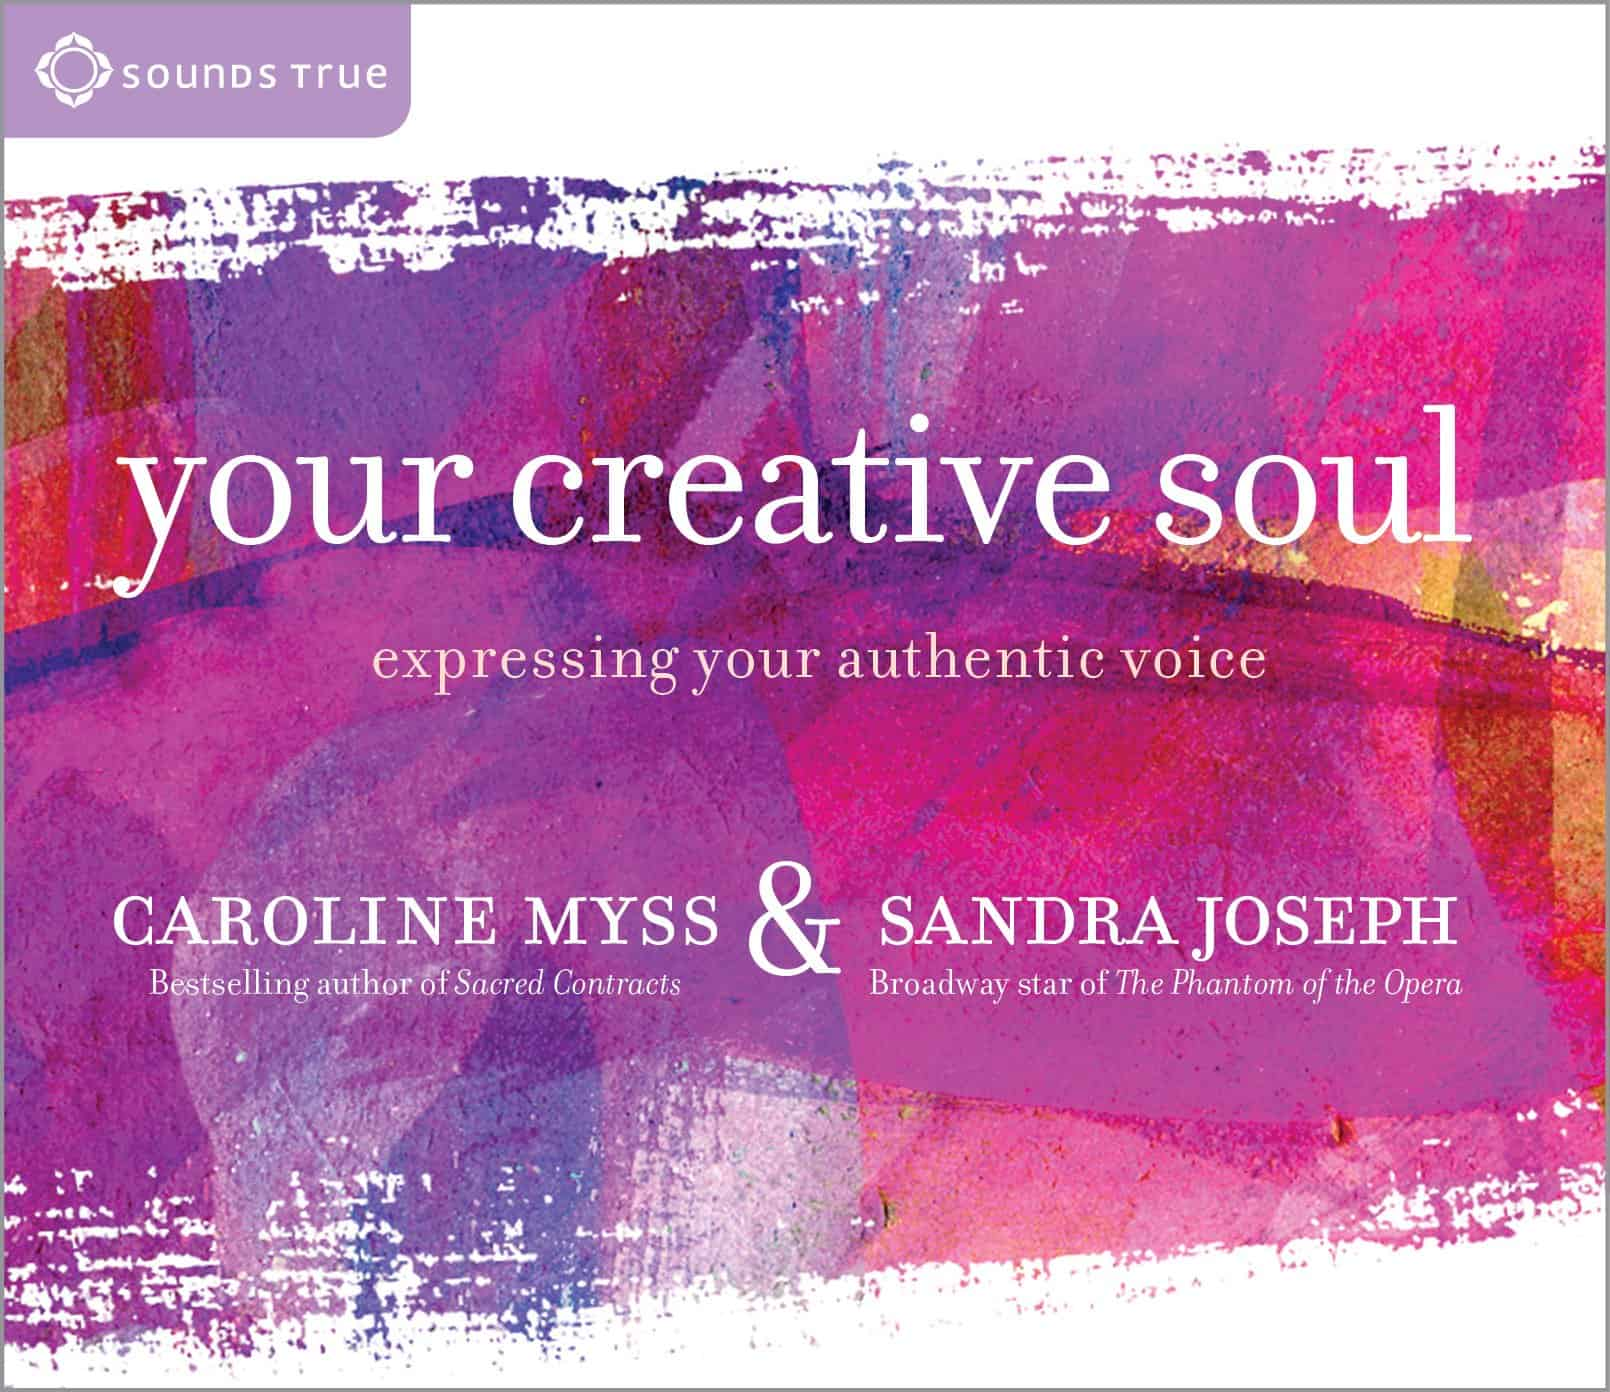 Your Creative Soul: Expressing Your Authentic Voice by Caroline Myss & Sandra Joseph